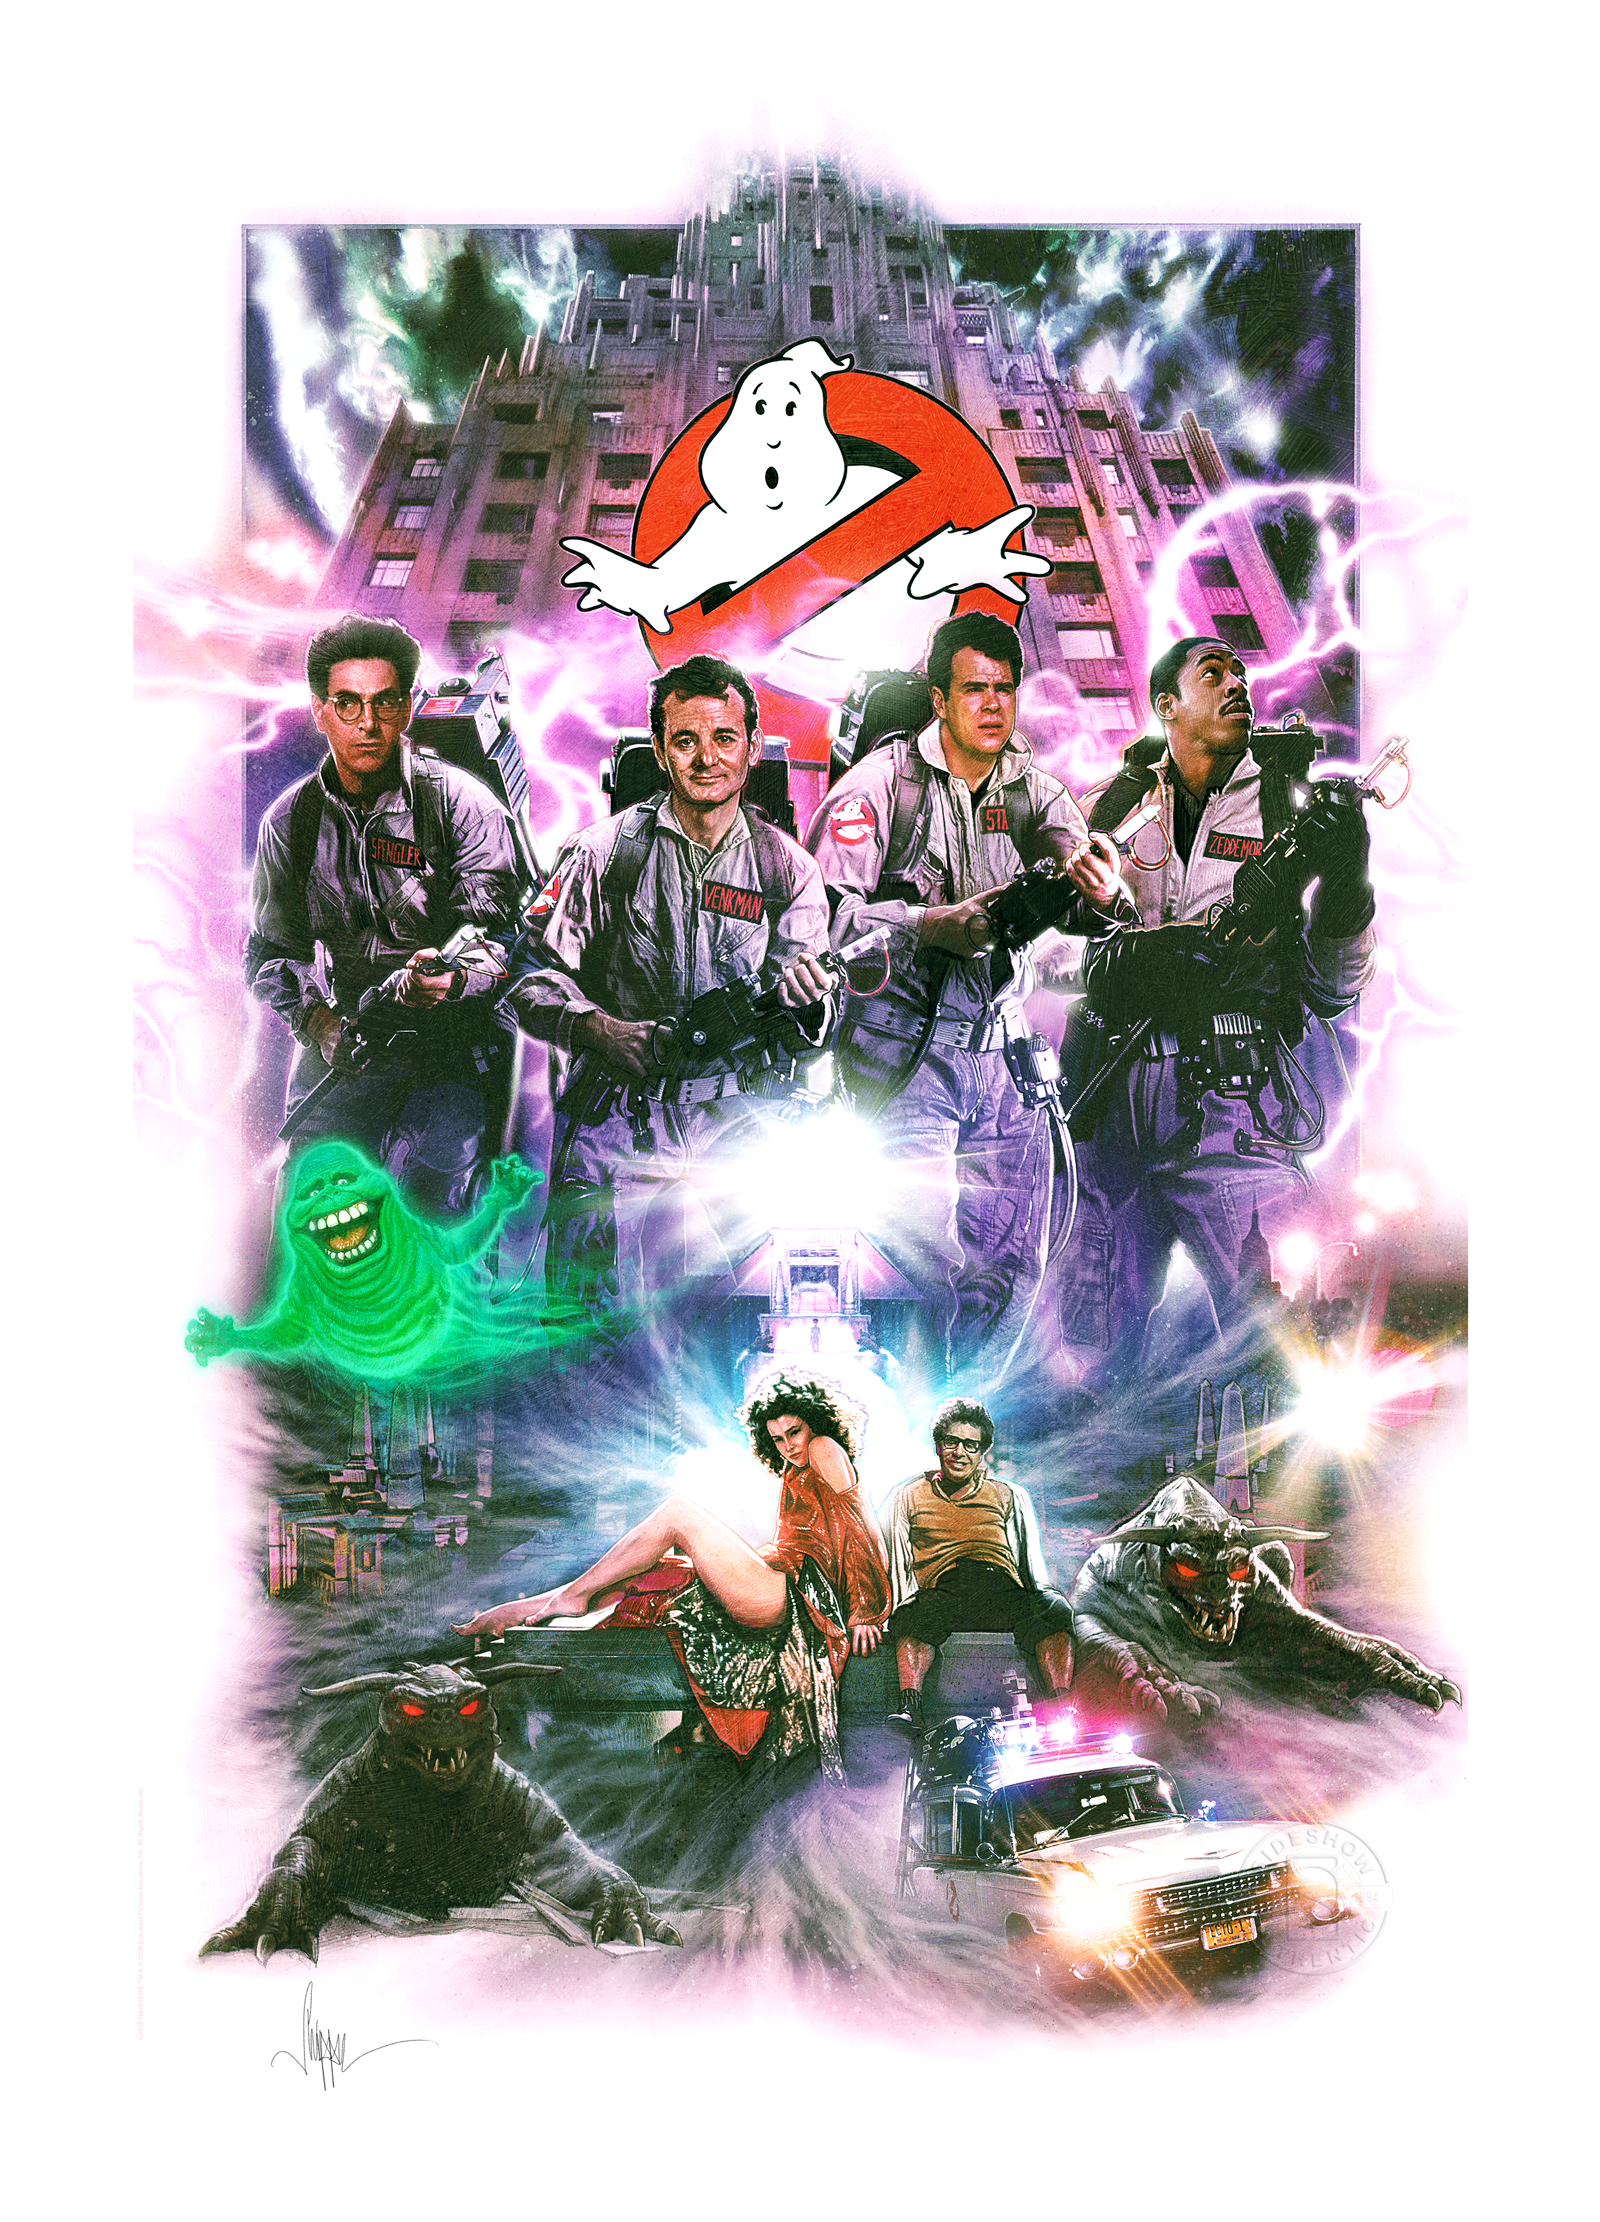 Sideshow Collectibles Ghostbusters Art Print